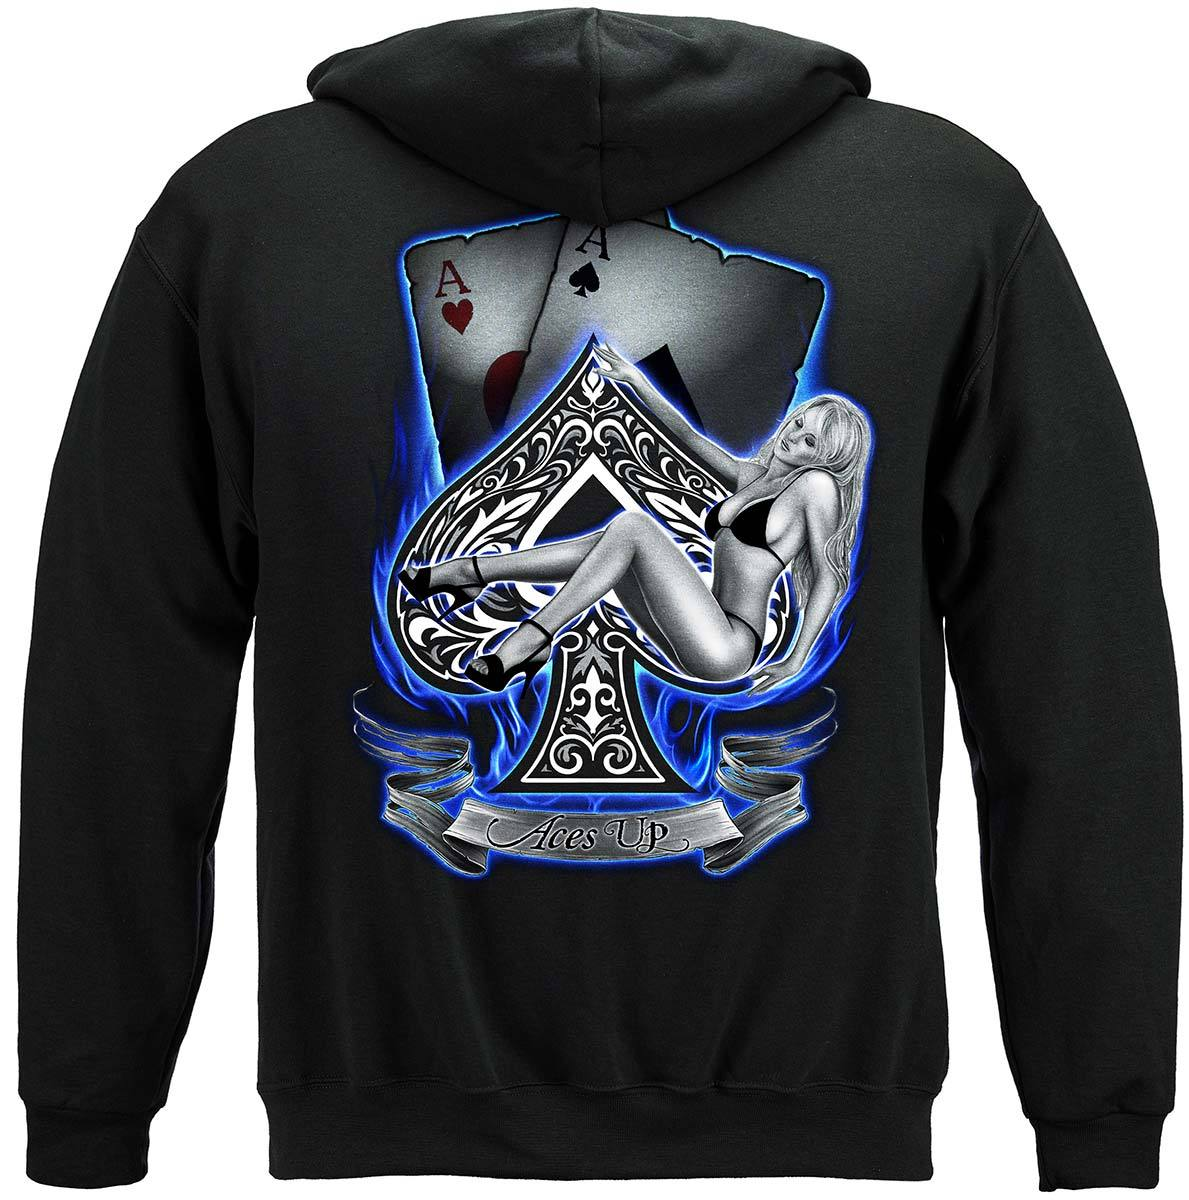 Aces Up Premium Hooded Sweat Shirt